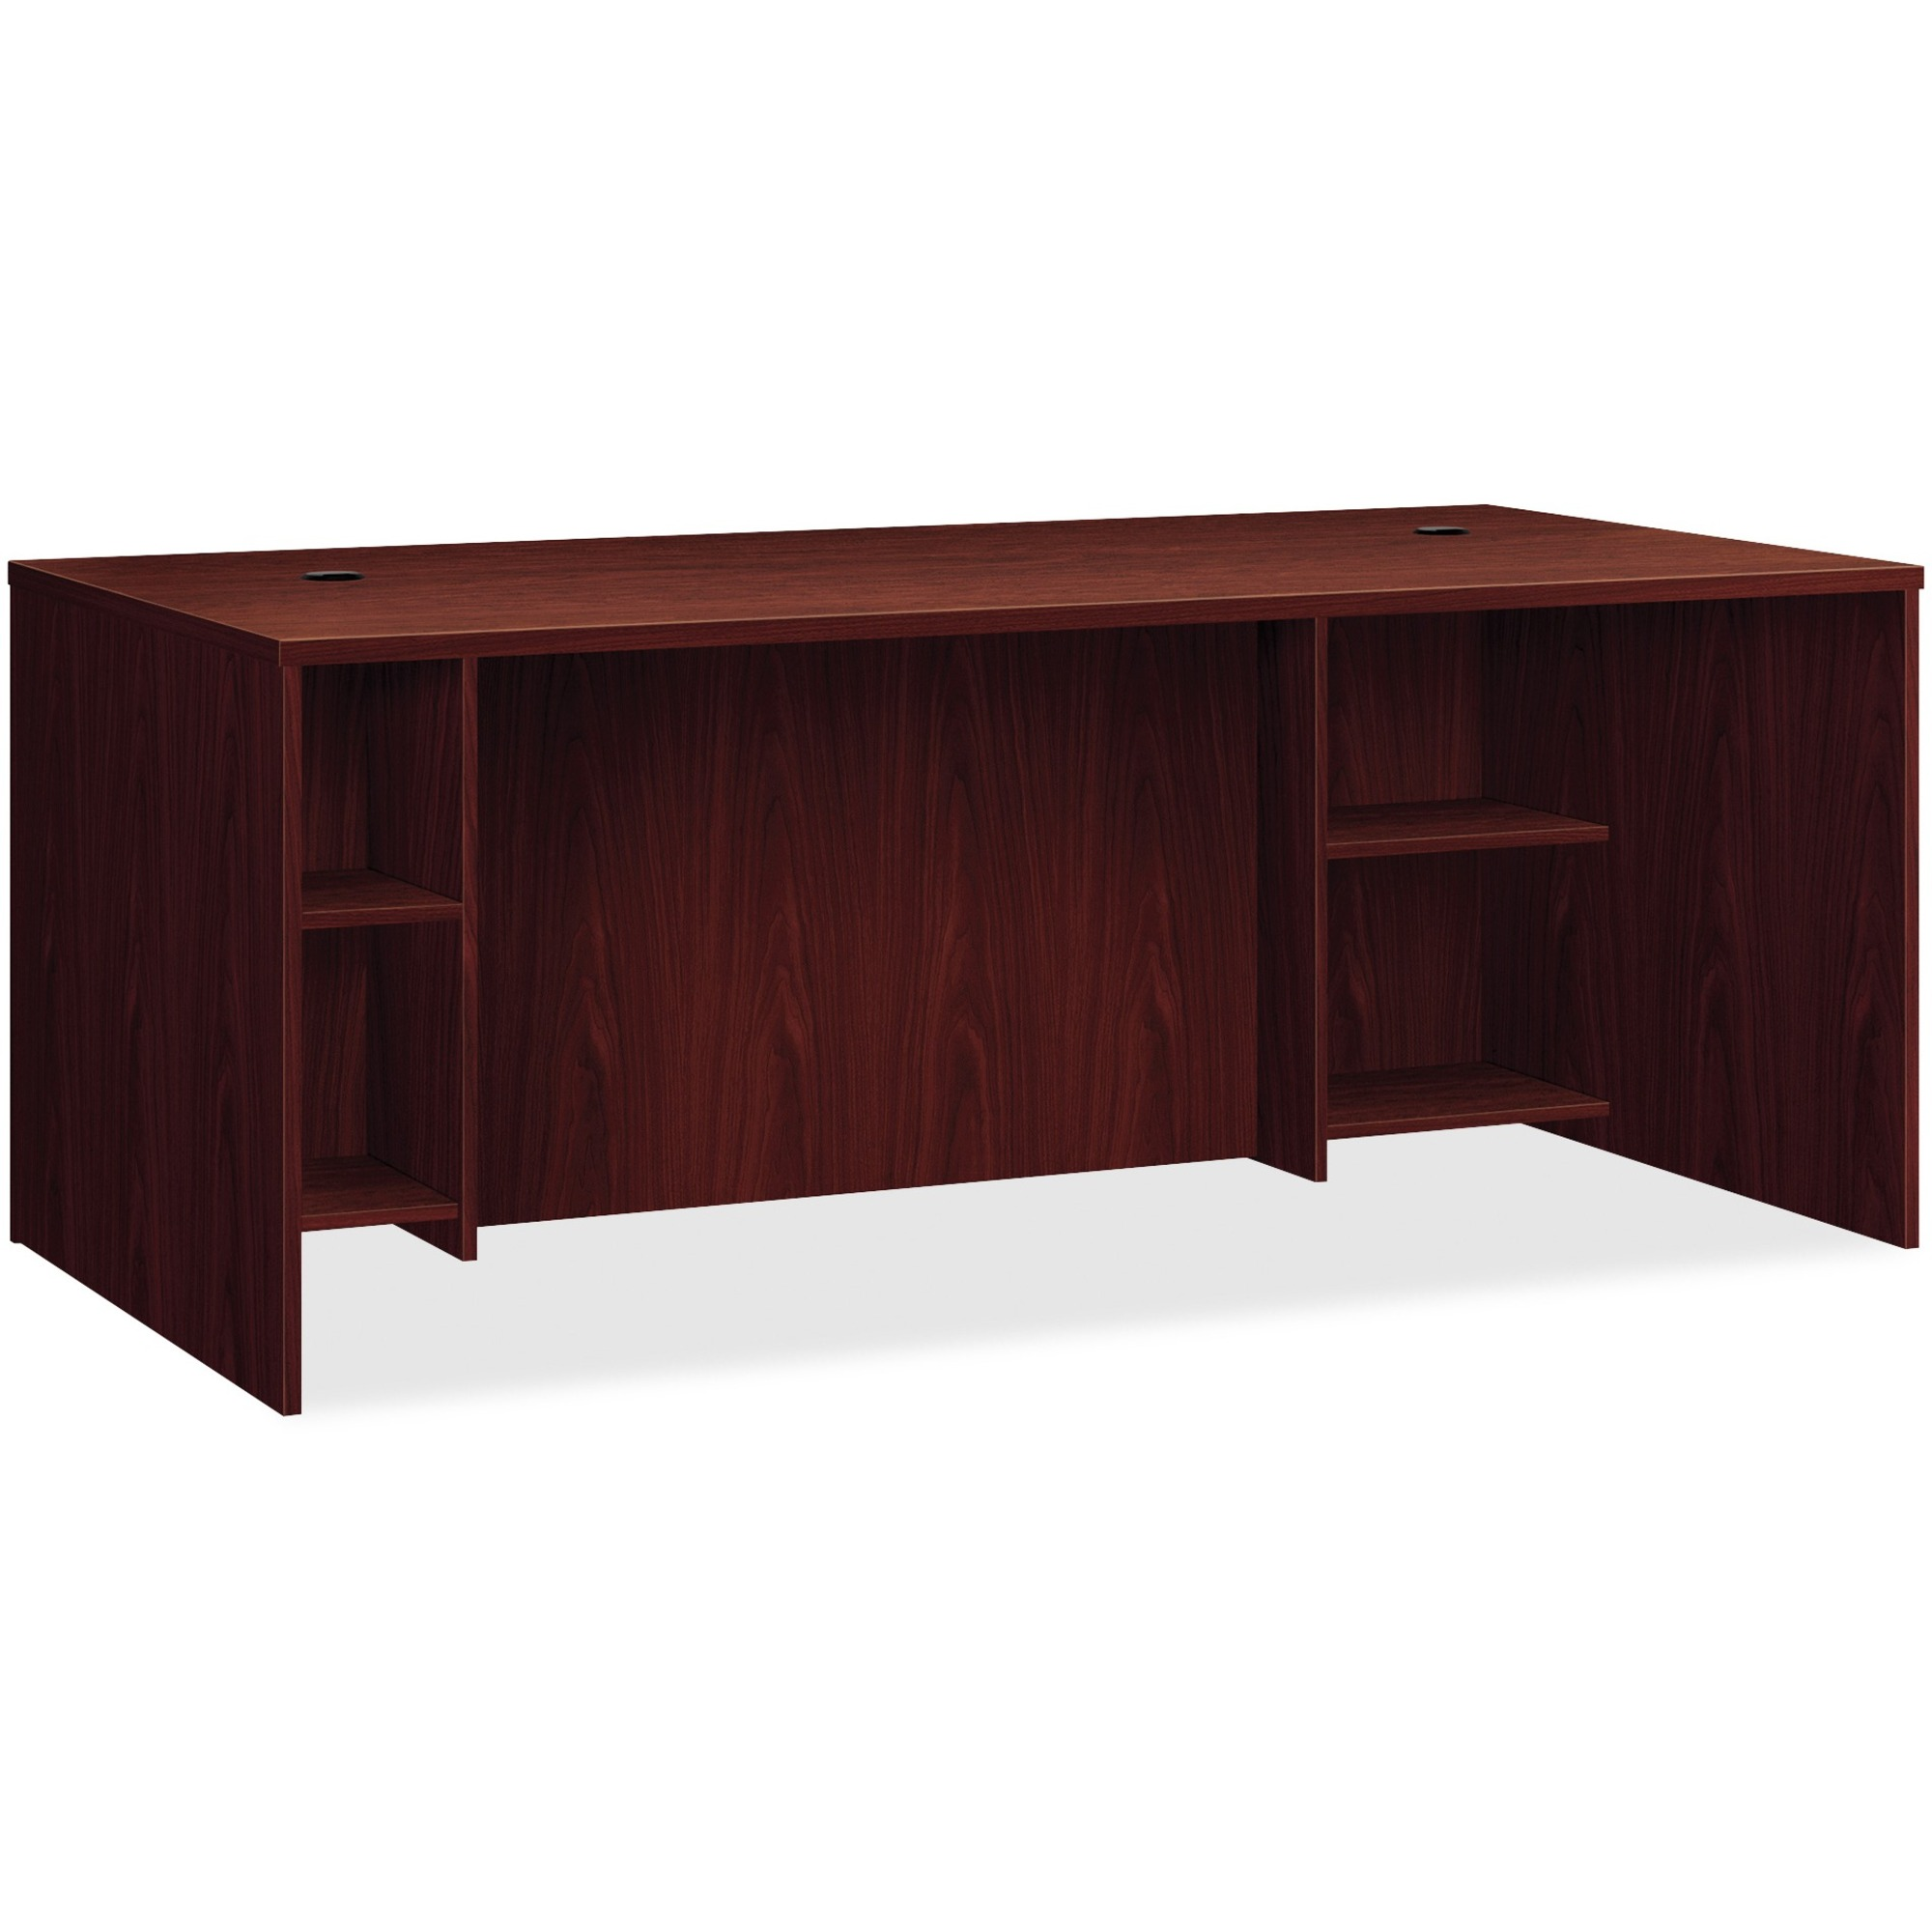 ocean stationery and office supplies furniture furniture